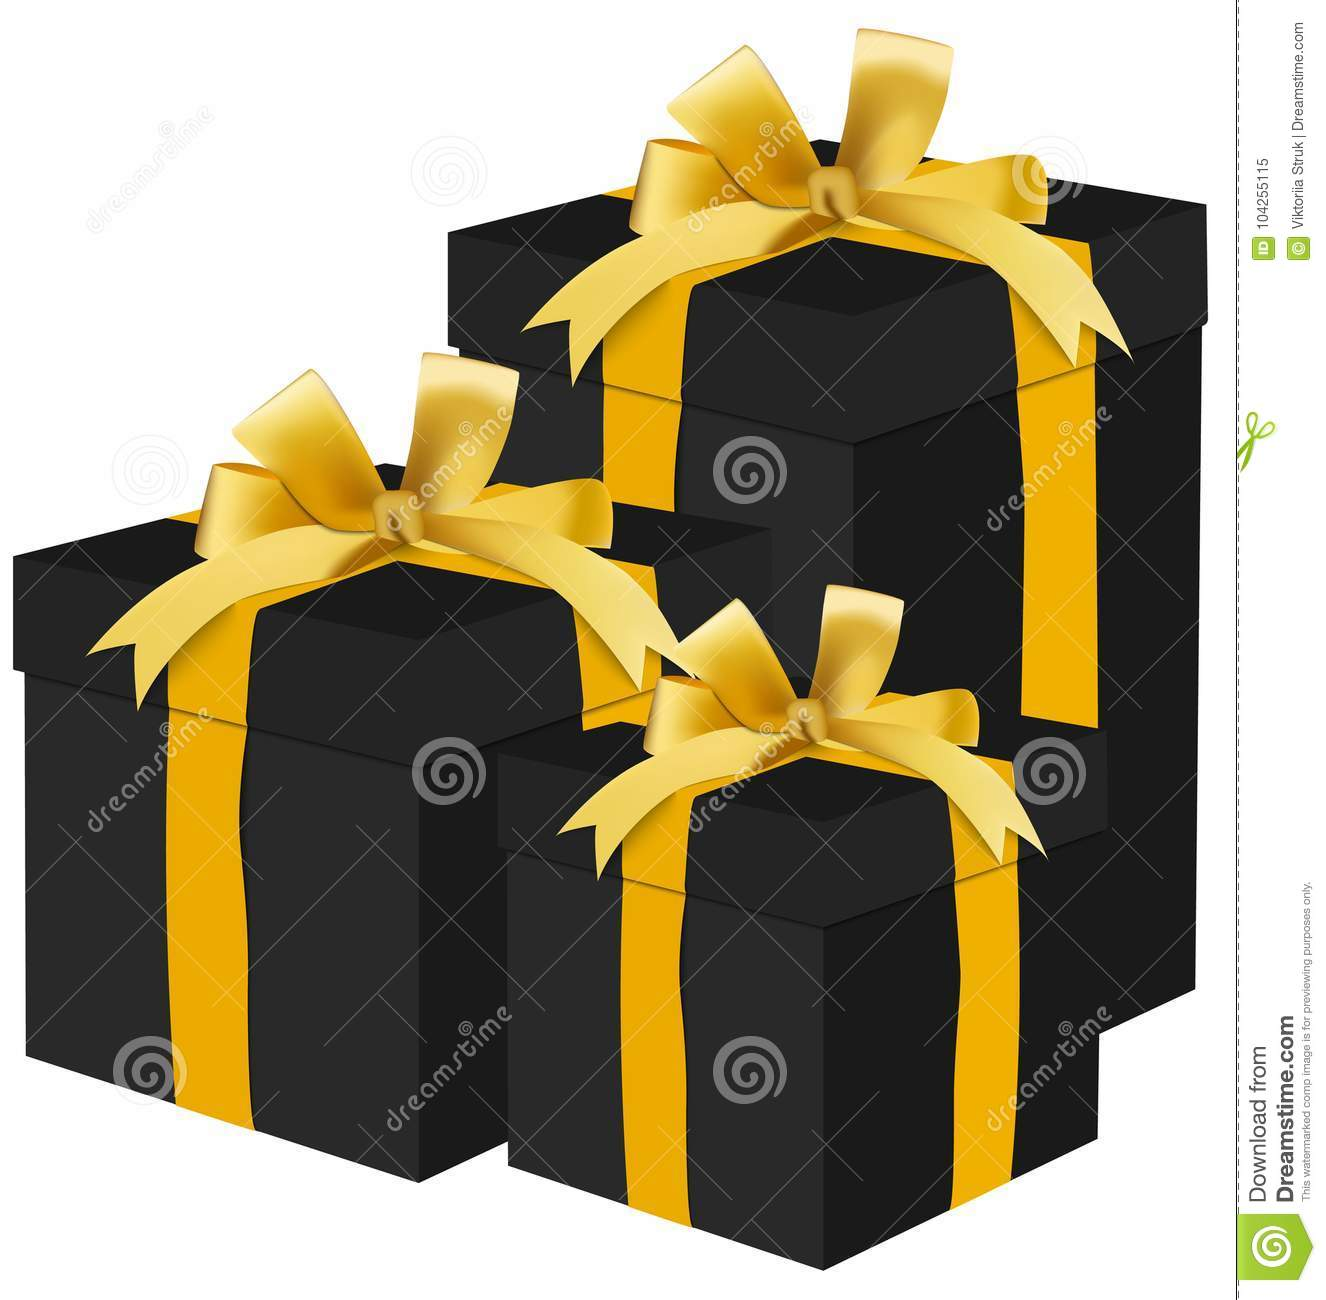 Black Gift Boxes Black Gift Boxes Stock Illustration Illustration Of Event 104255115